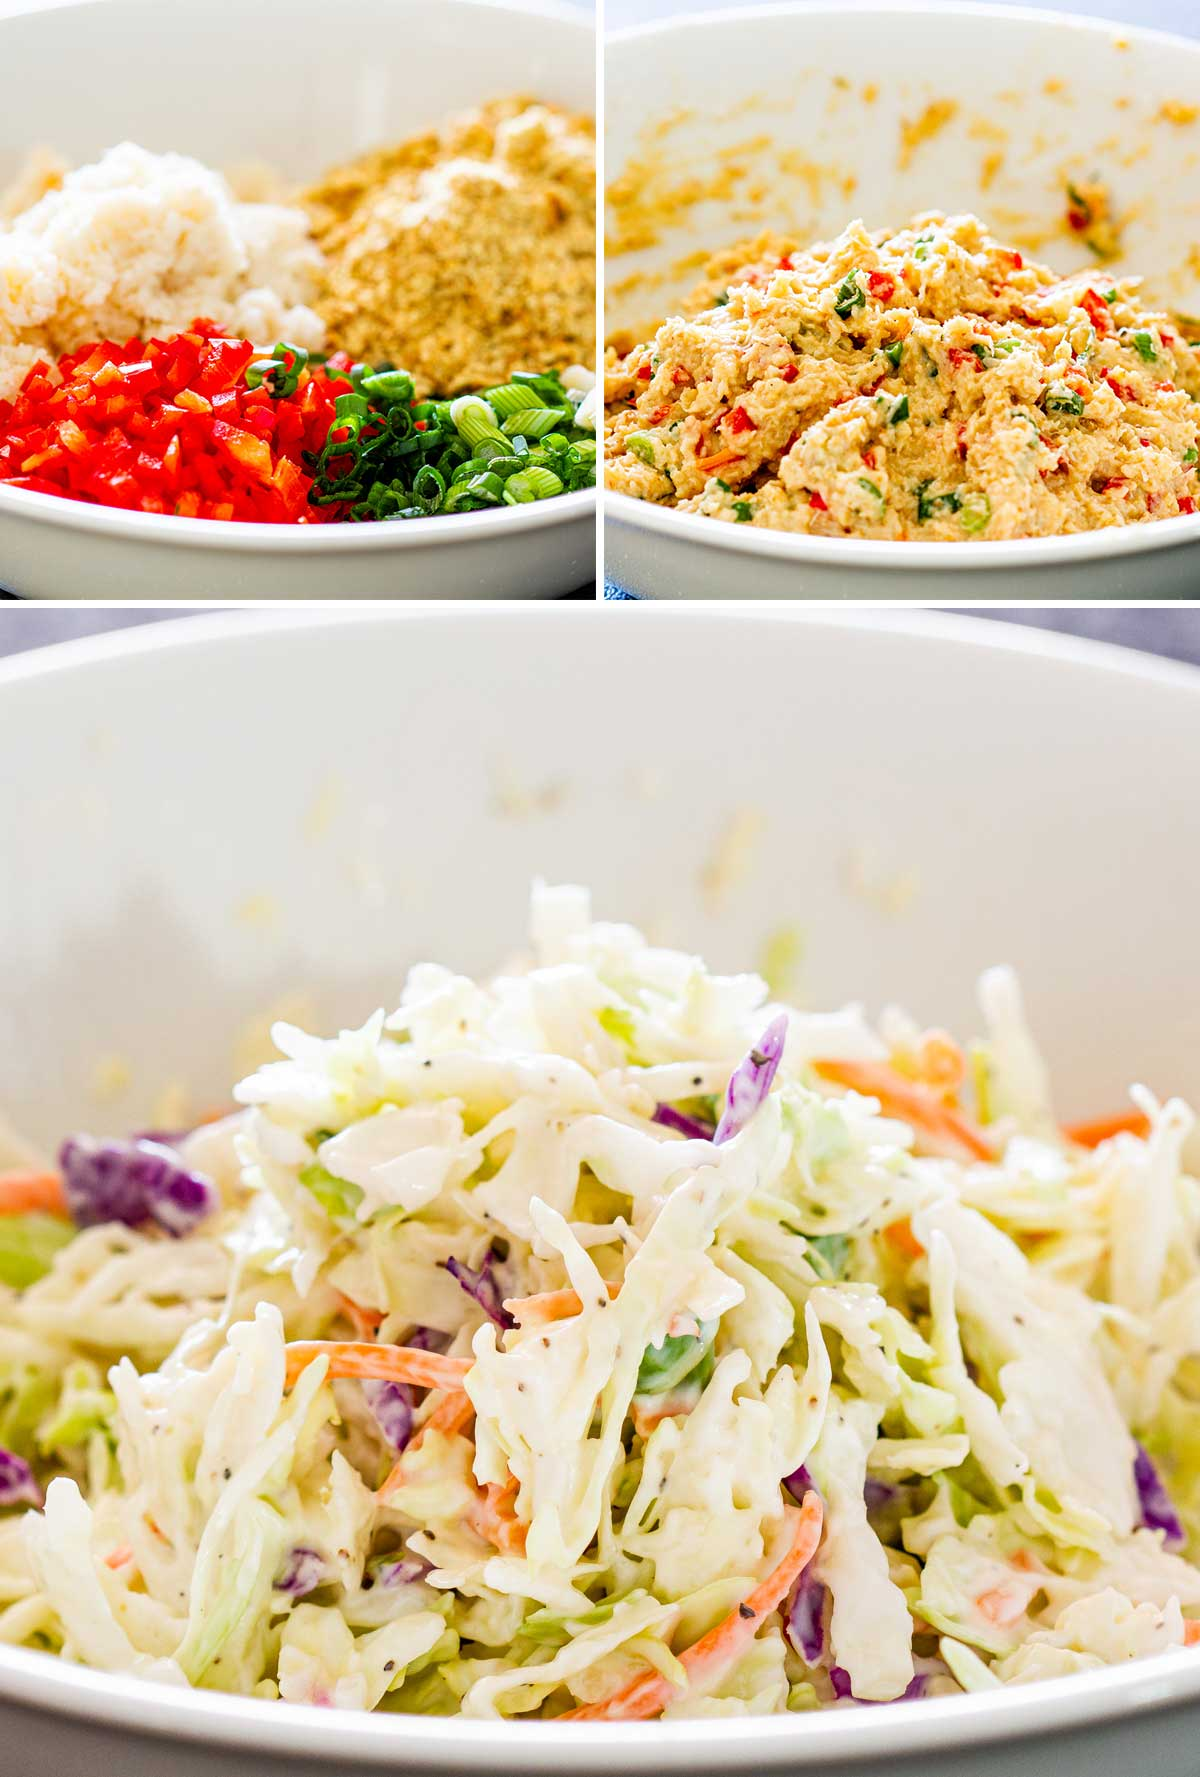 3 process shots showing how to make crab cake mixture and coleslaw